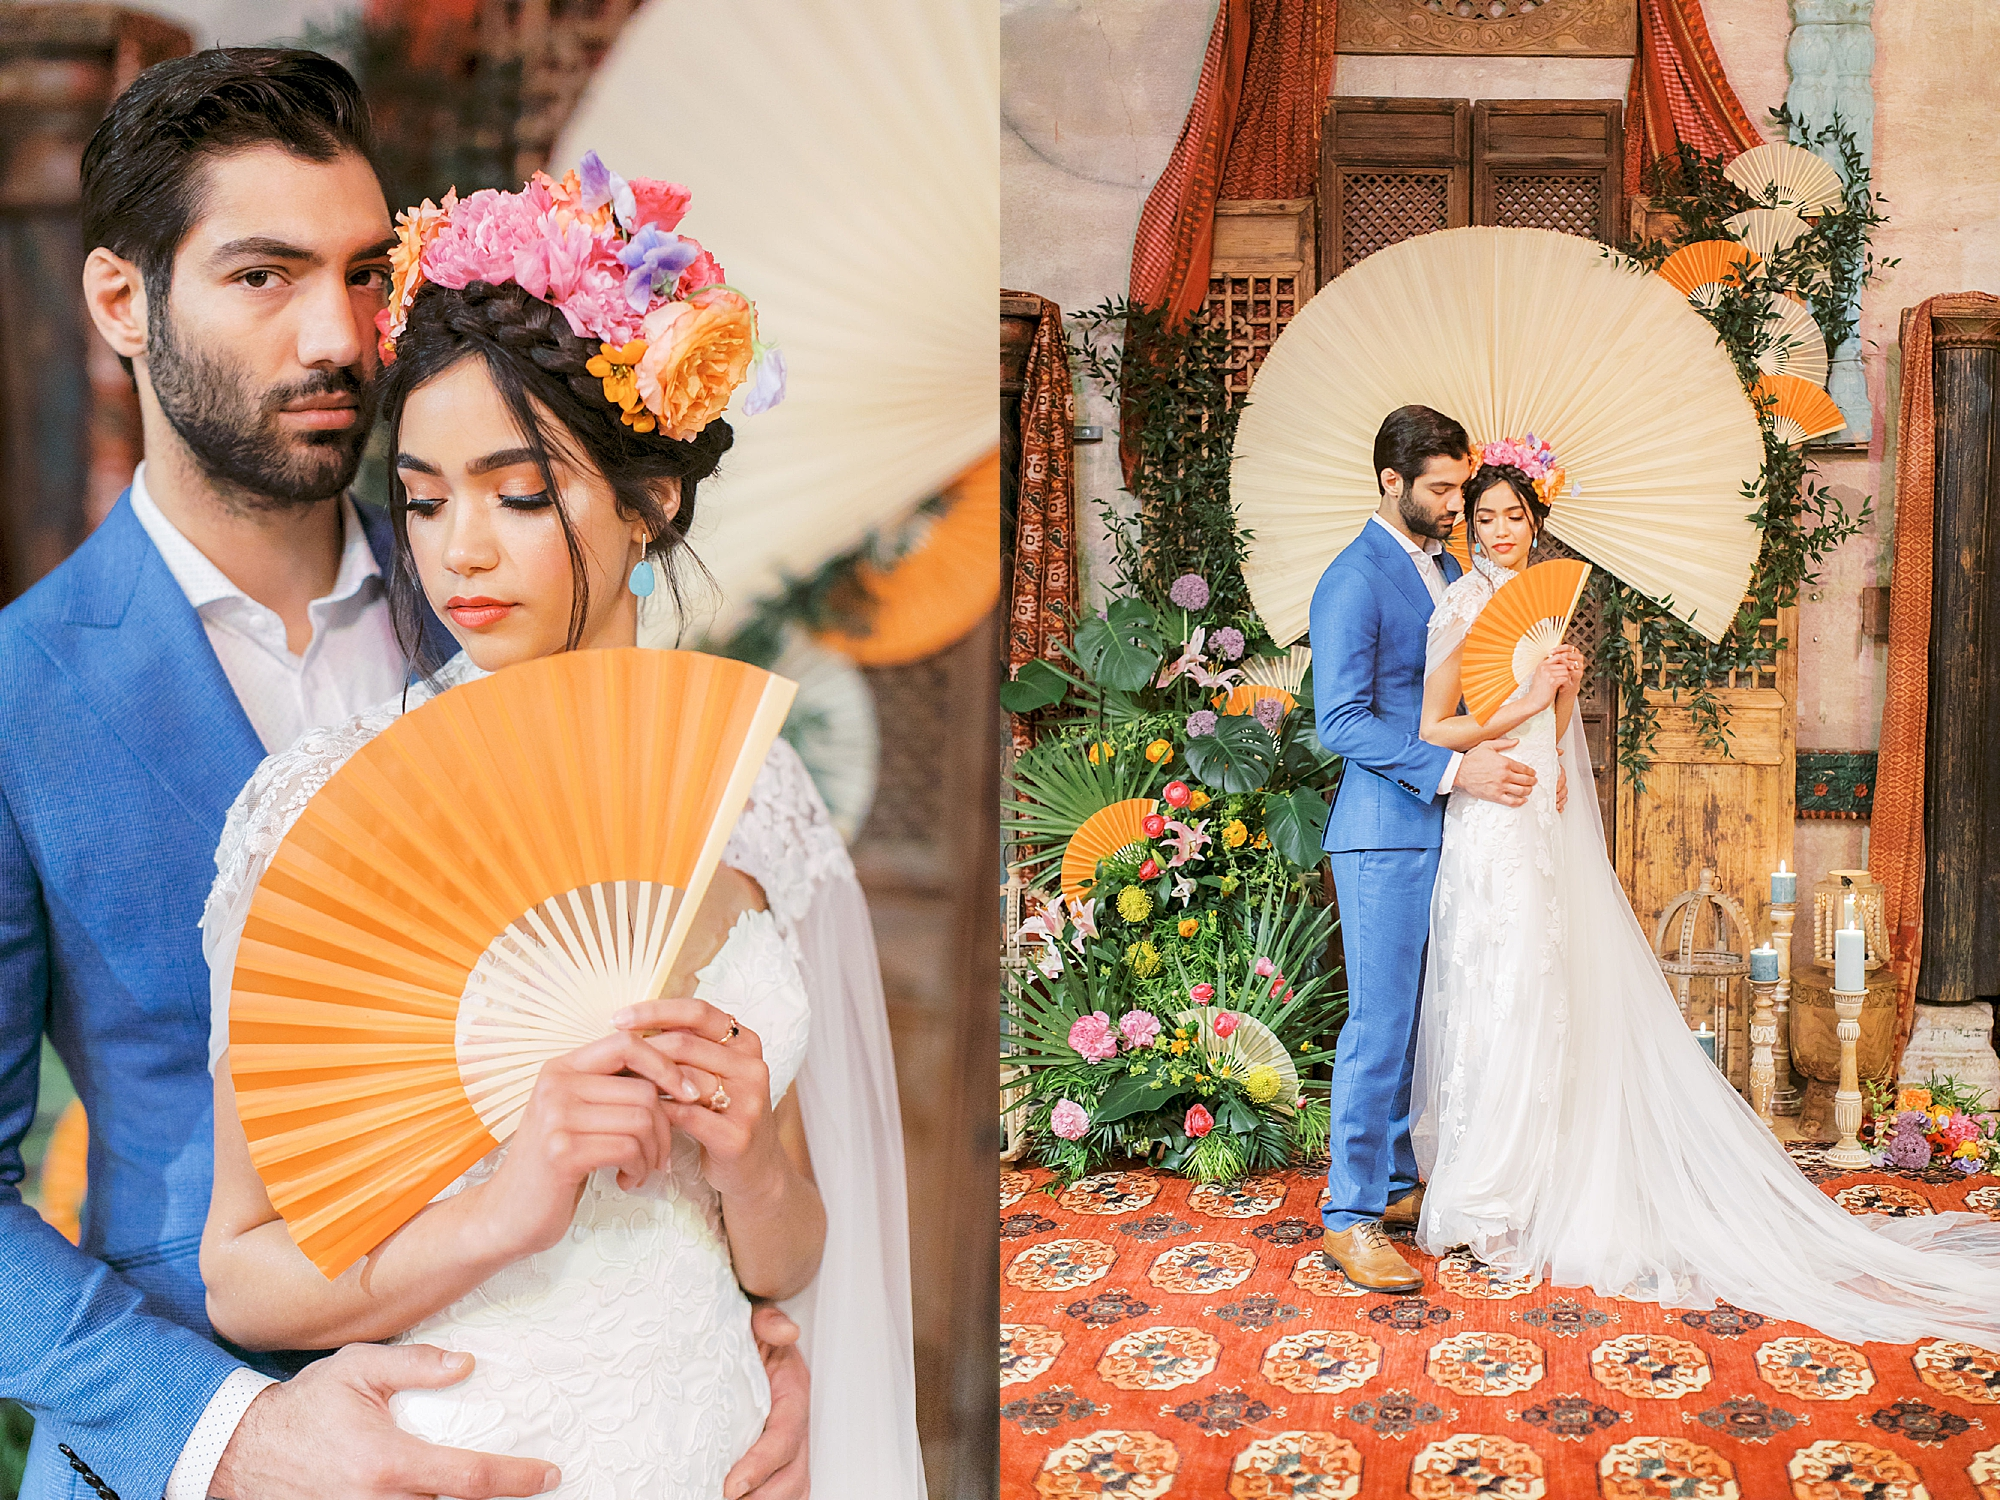 Vibrant and Colorful Frida Kahlo Inspired Wedding Photography by Magdalena Studios 0041